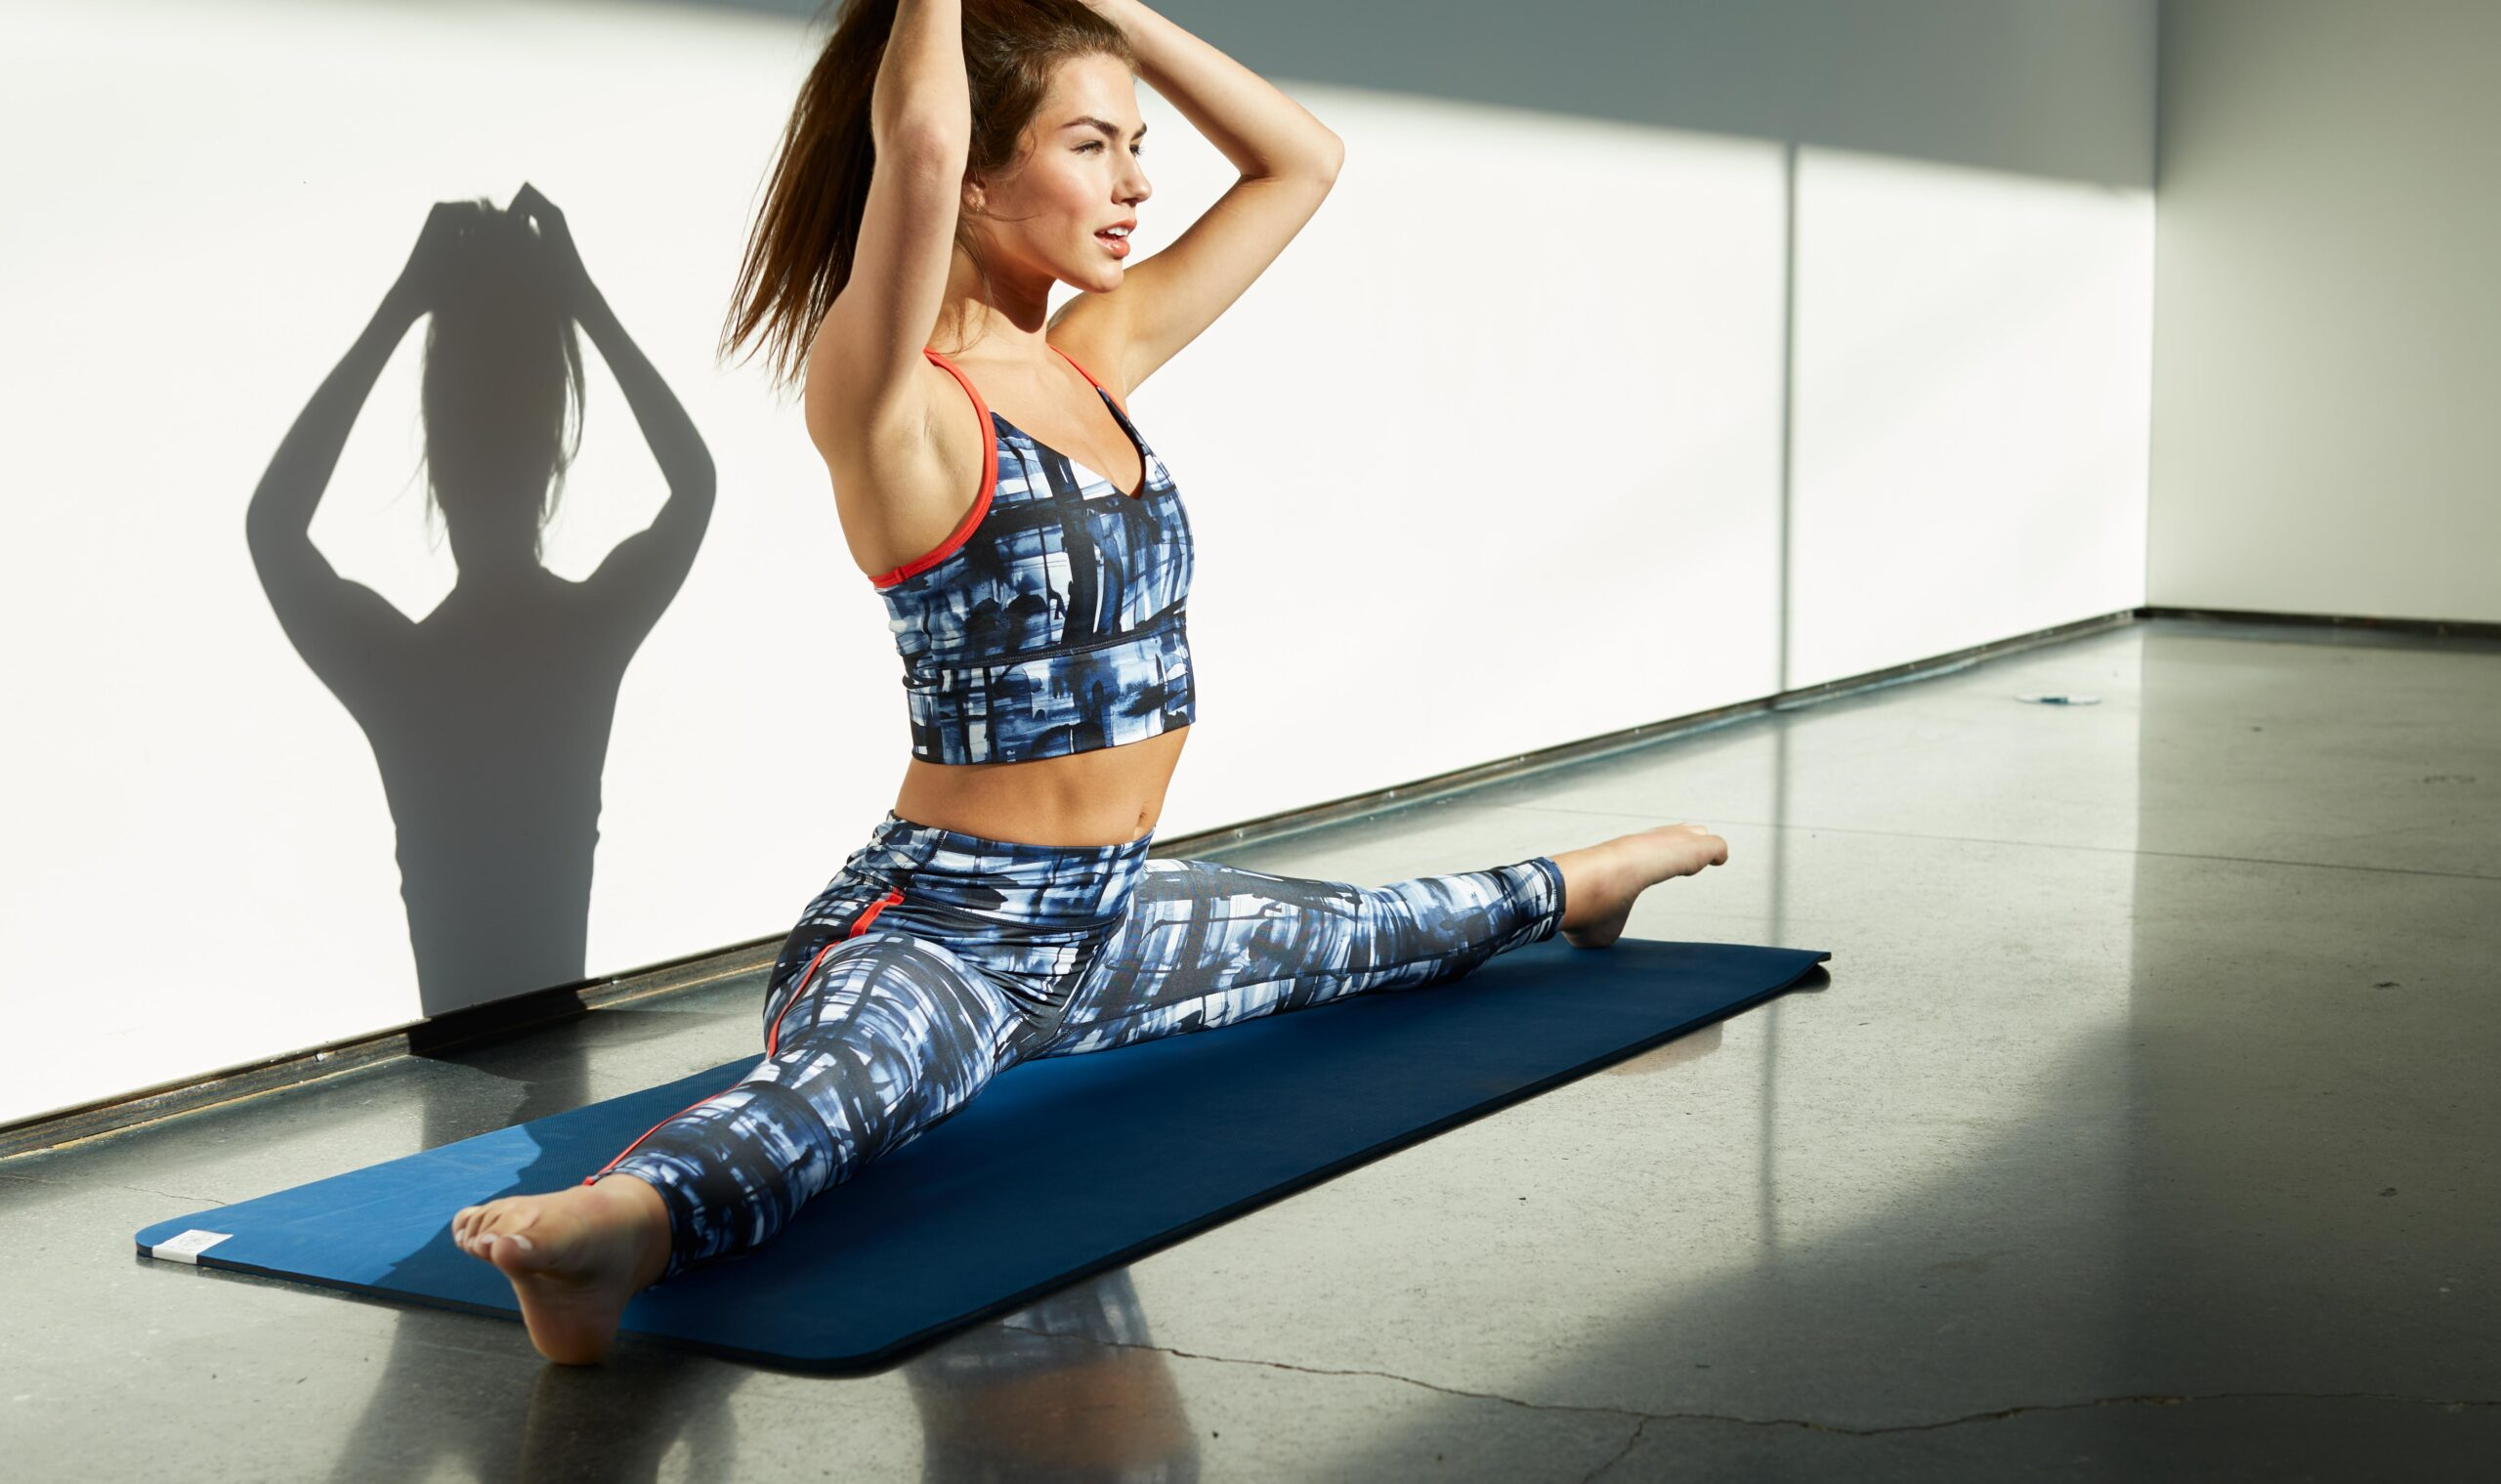 Jason Innes captures a model in yoga attire doing a side split on a yoga mat with her hands on her head